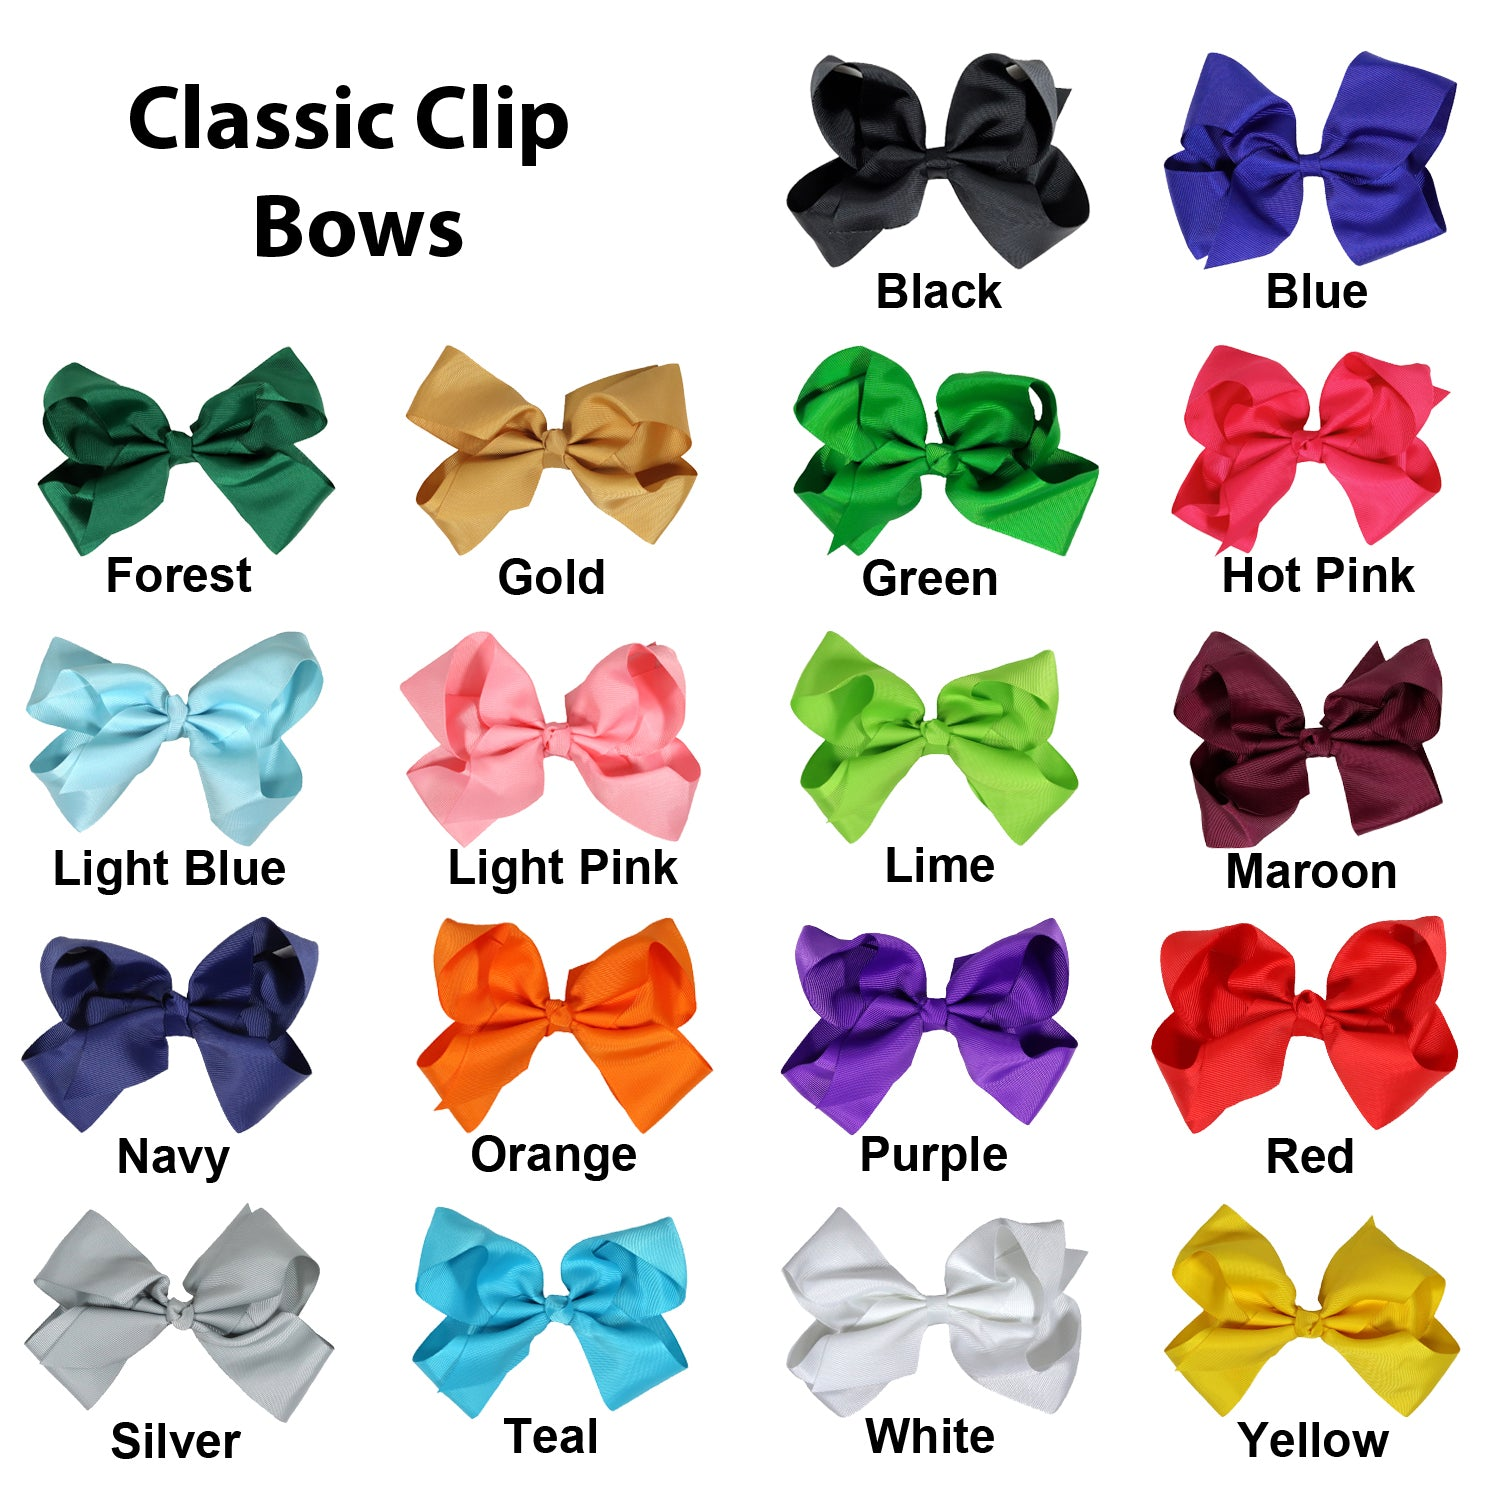 Quality HOT PINK Bow tie-*The More Bows U Buy/>The More £ U Save*/>Over 50 Colours